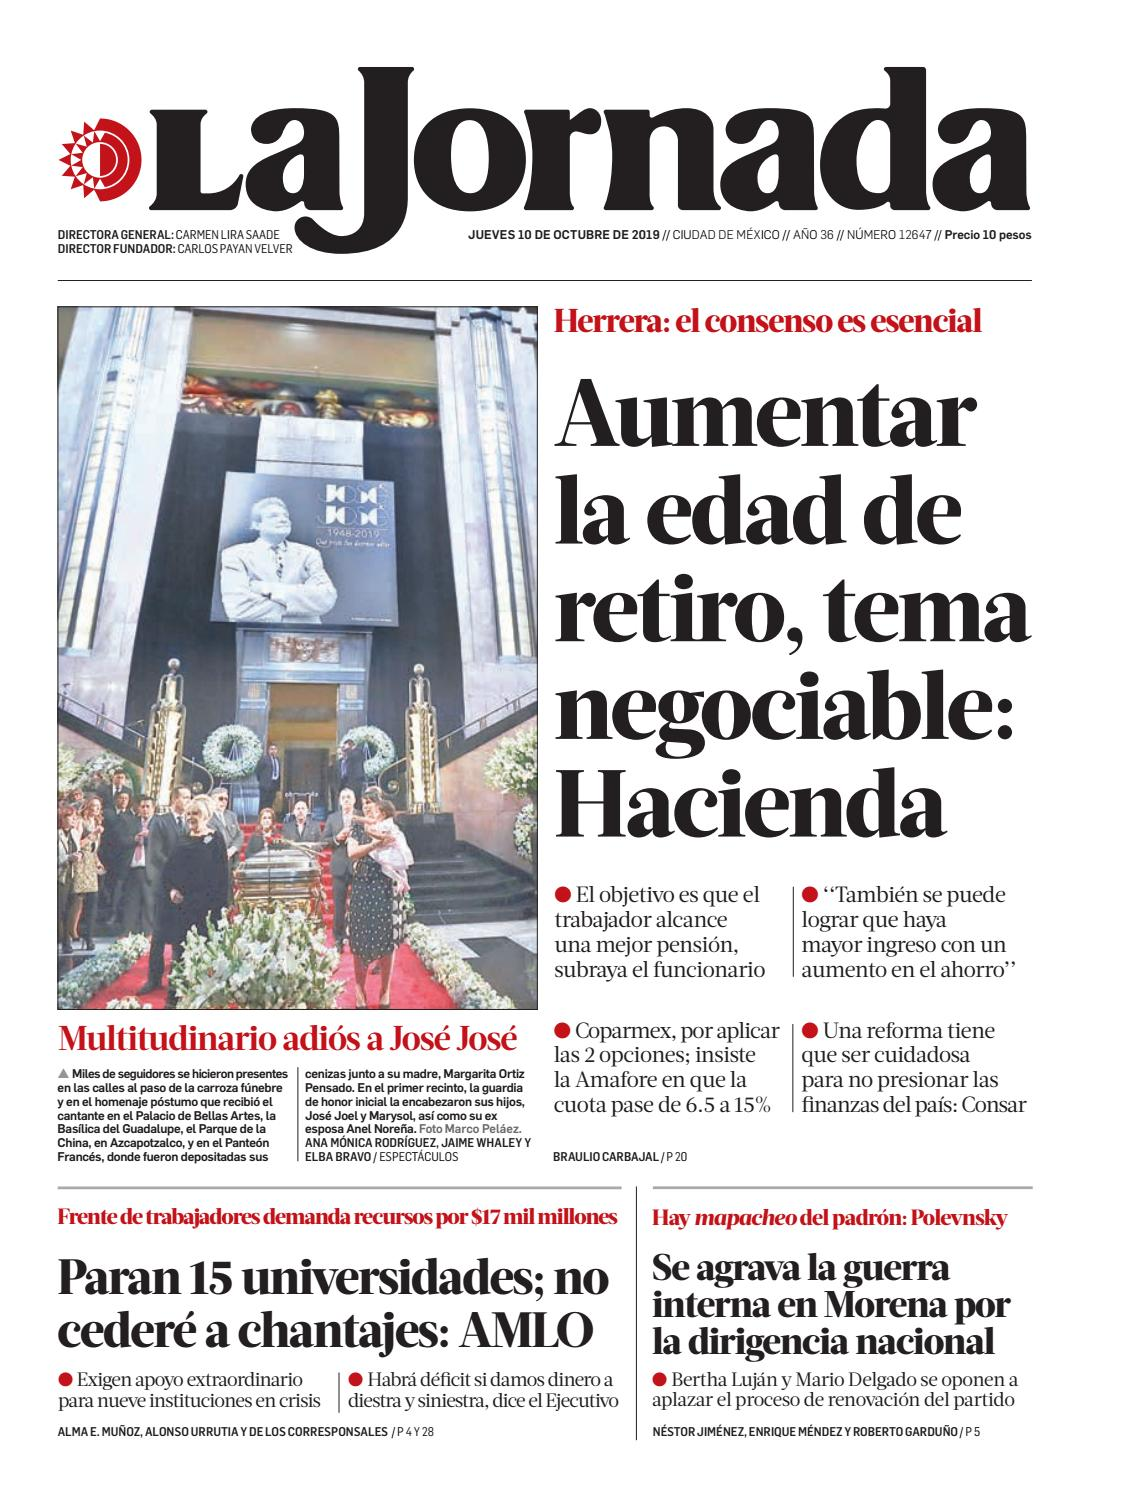 La Jornada 10 10 2019 By La Jornada Issuu